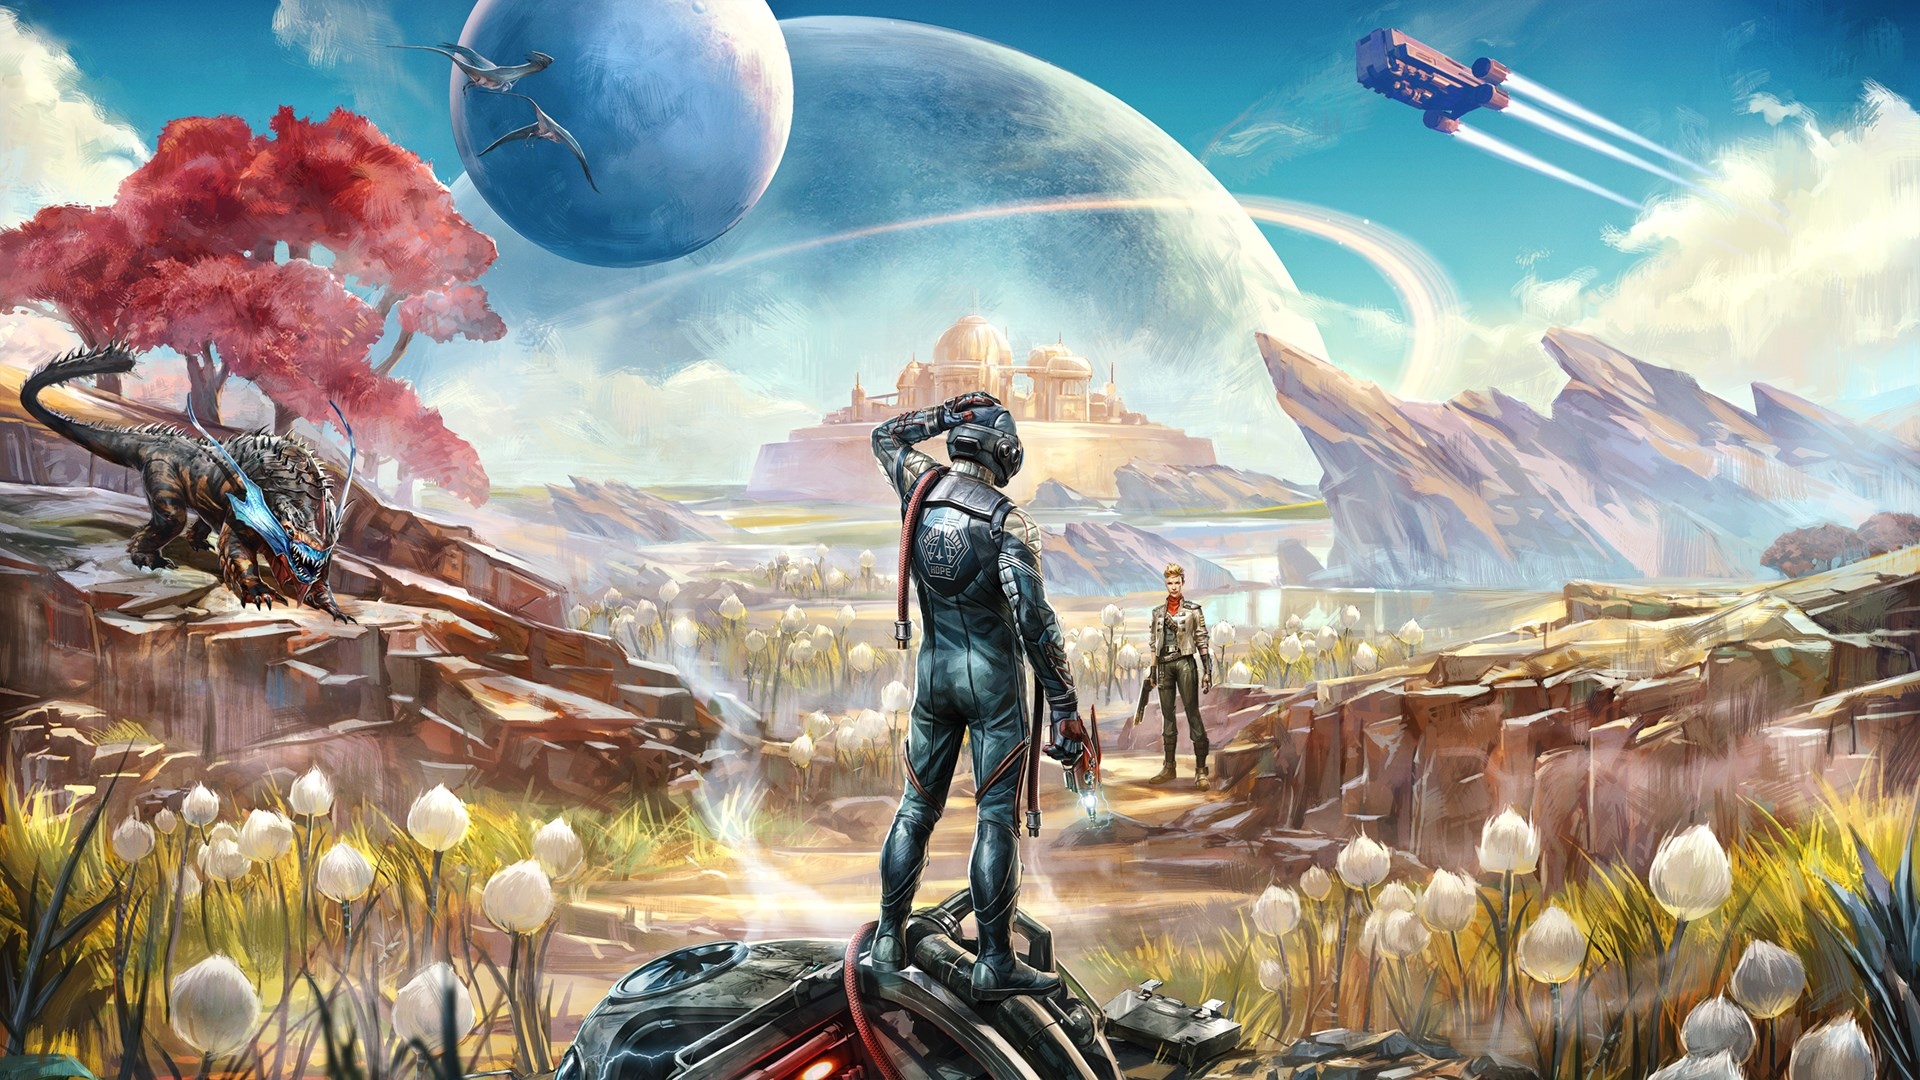 The Ups and Downs of Space Fallout, AKA The Outer Worlds